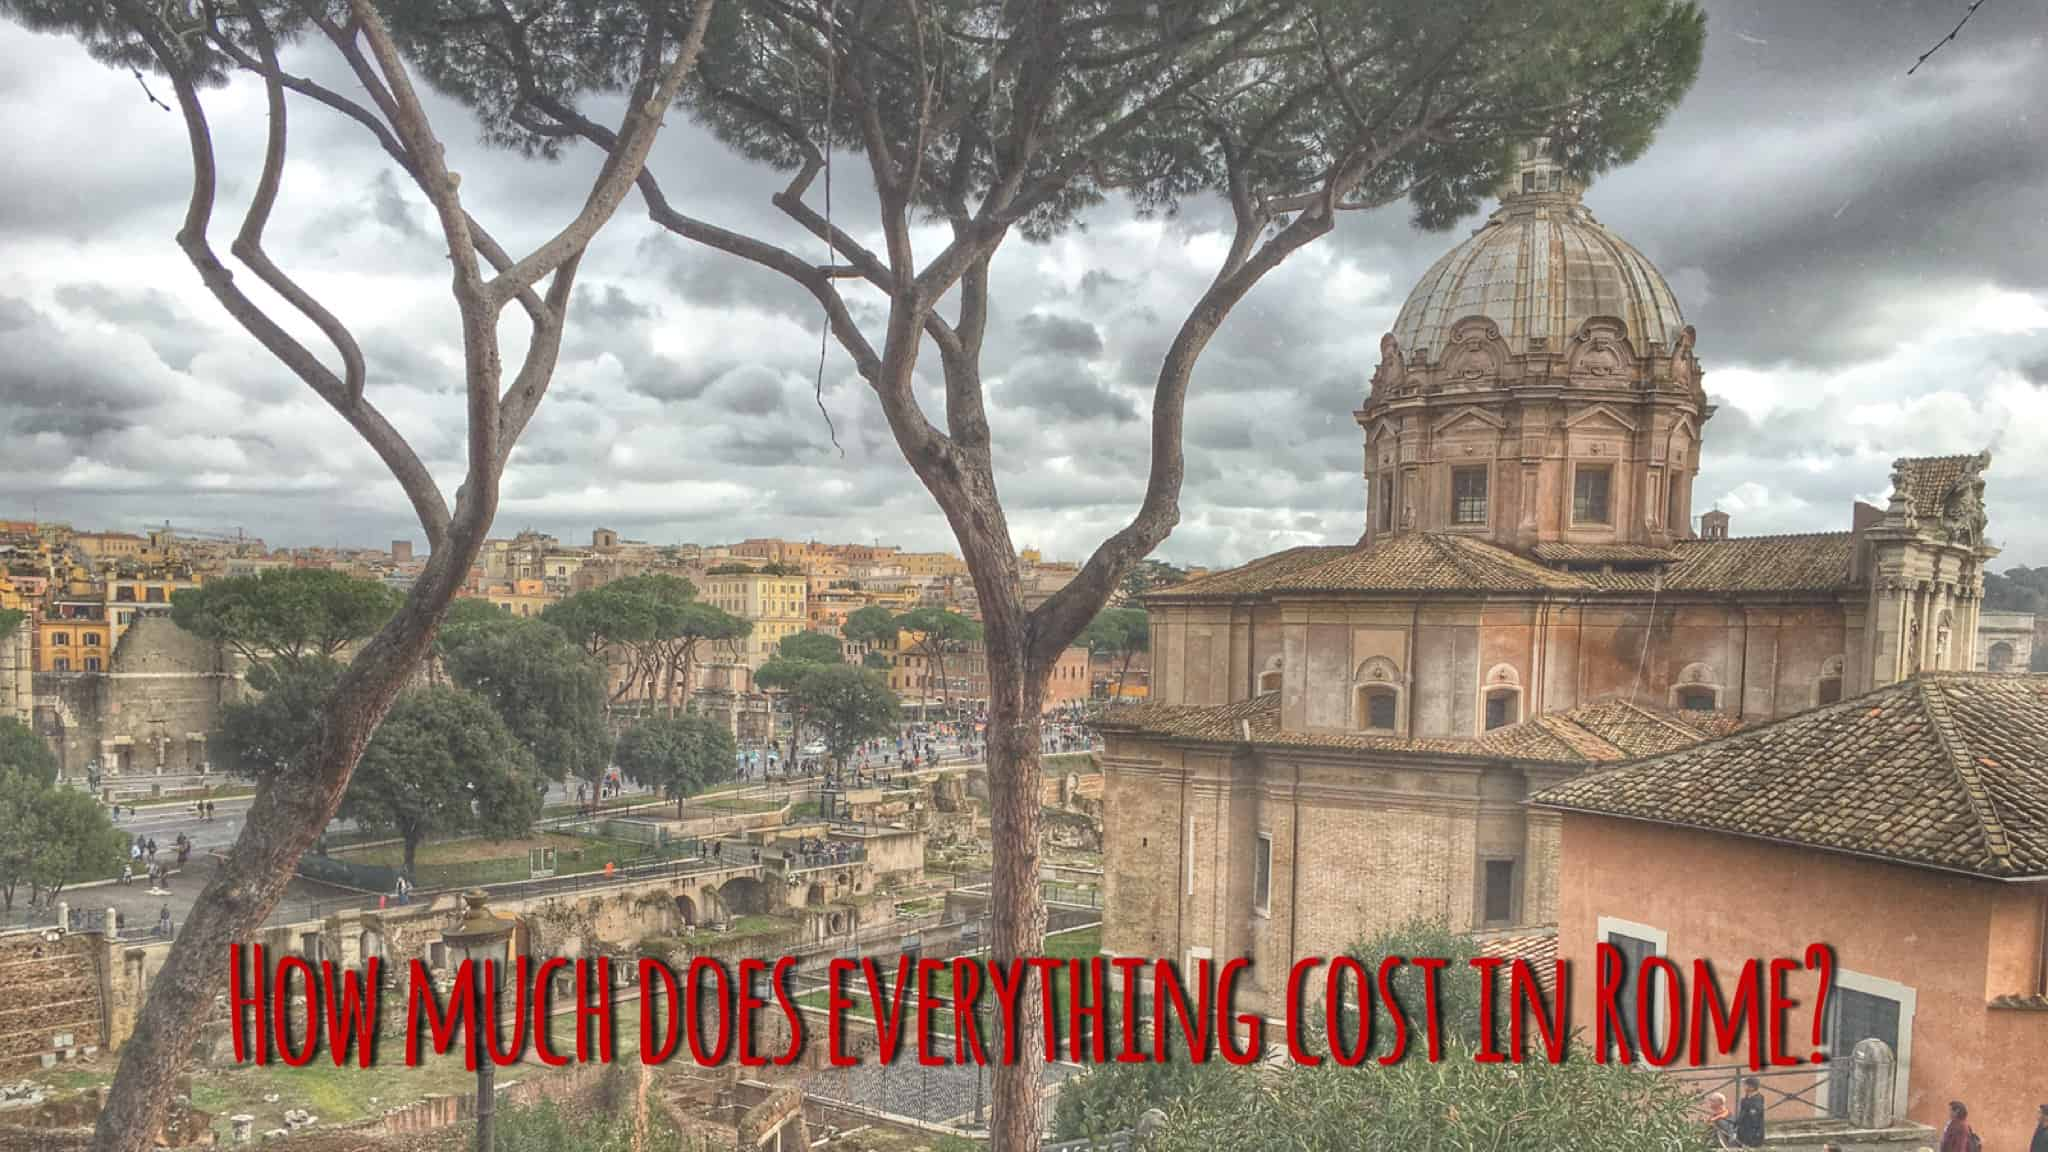 Is Rome expensive? Prices in Rome